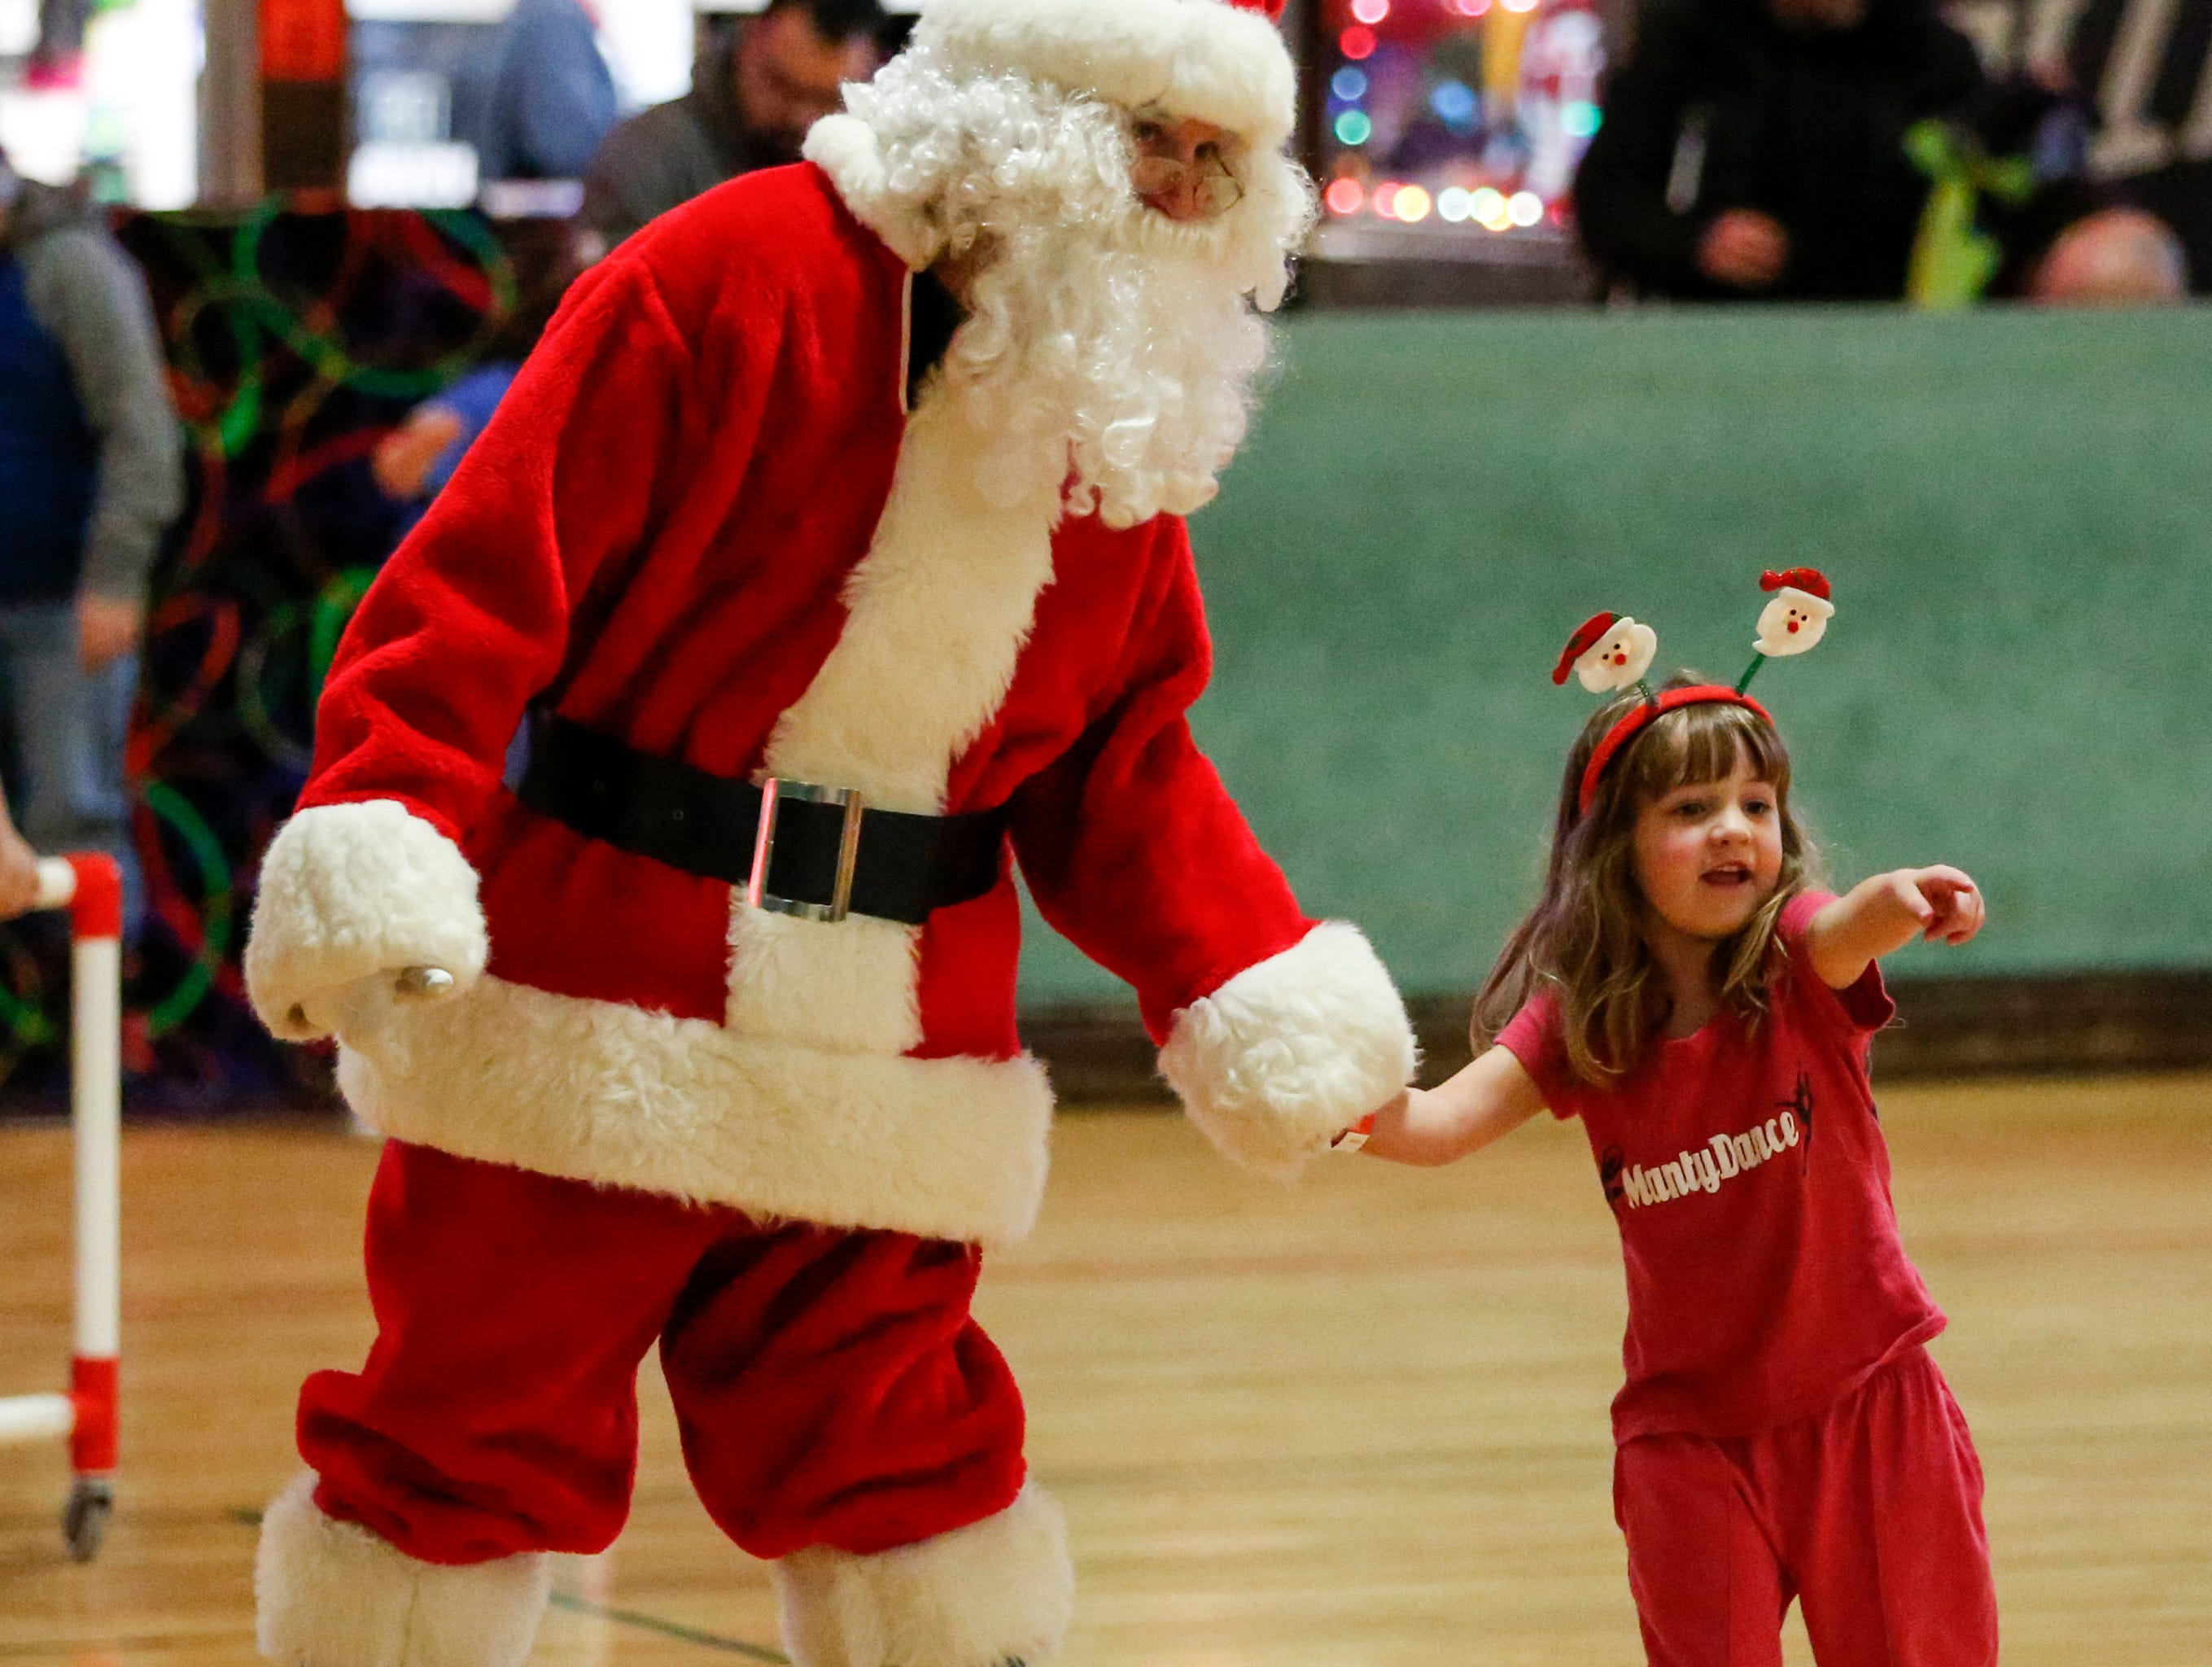 Santa skates with Peyton Pangburn, 4, during the 20th annual Santa Skate at Rollaire Skate Center Saturday, December 15, 2018, in Manitowoc, Wis. Joshua Clark/USA TODAY NETWORK-Wisconsin